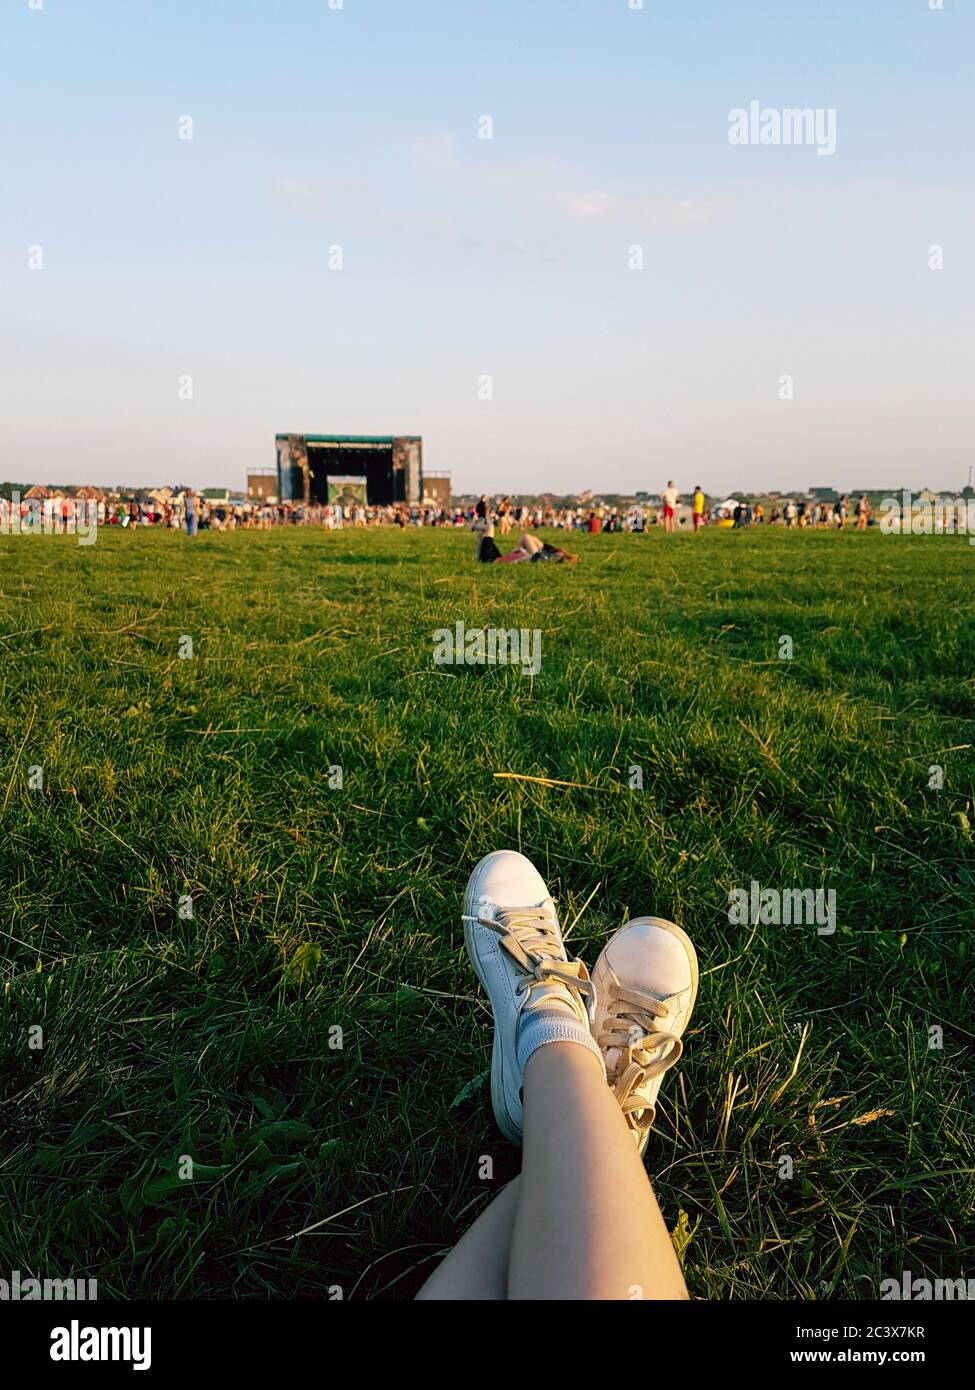 Relaxing at open air music festival in Ukraine. Traditional celebration with famous music groups performing on stage. Listening to live music Stock Photo